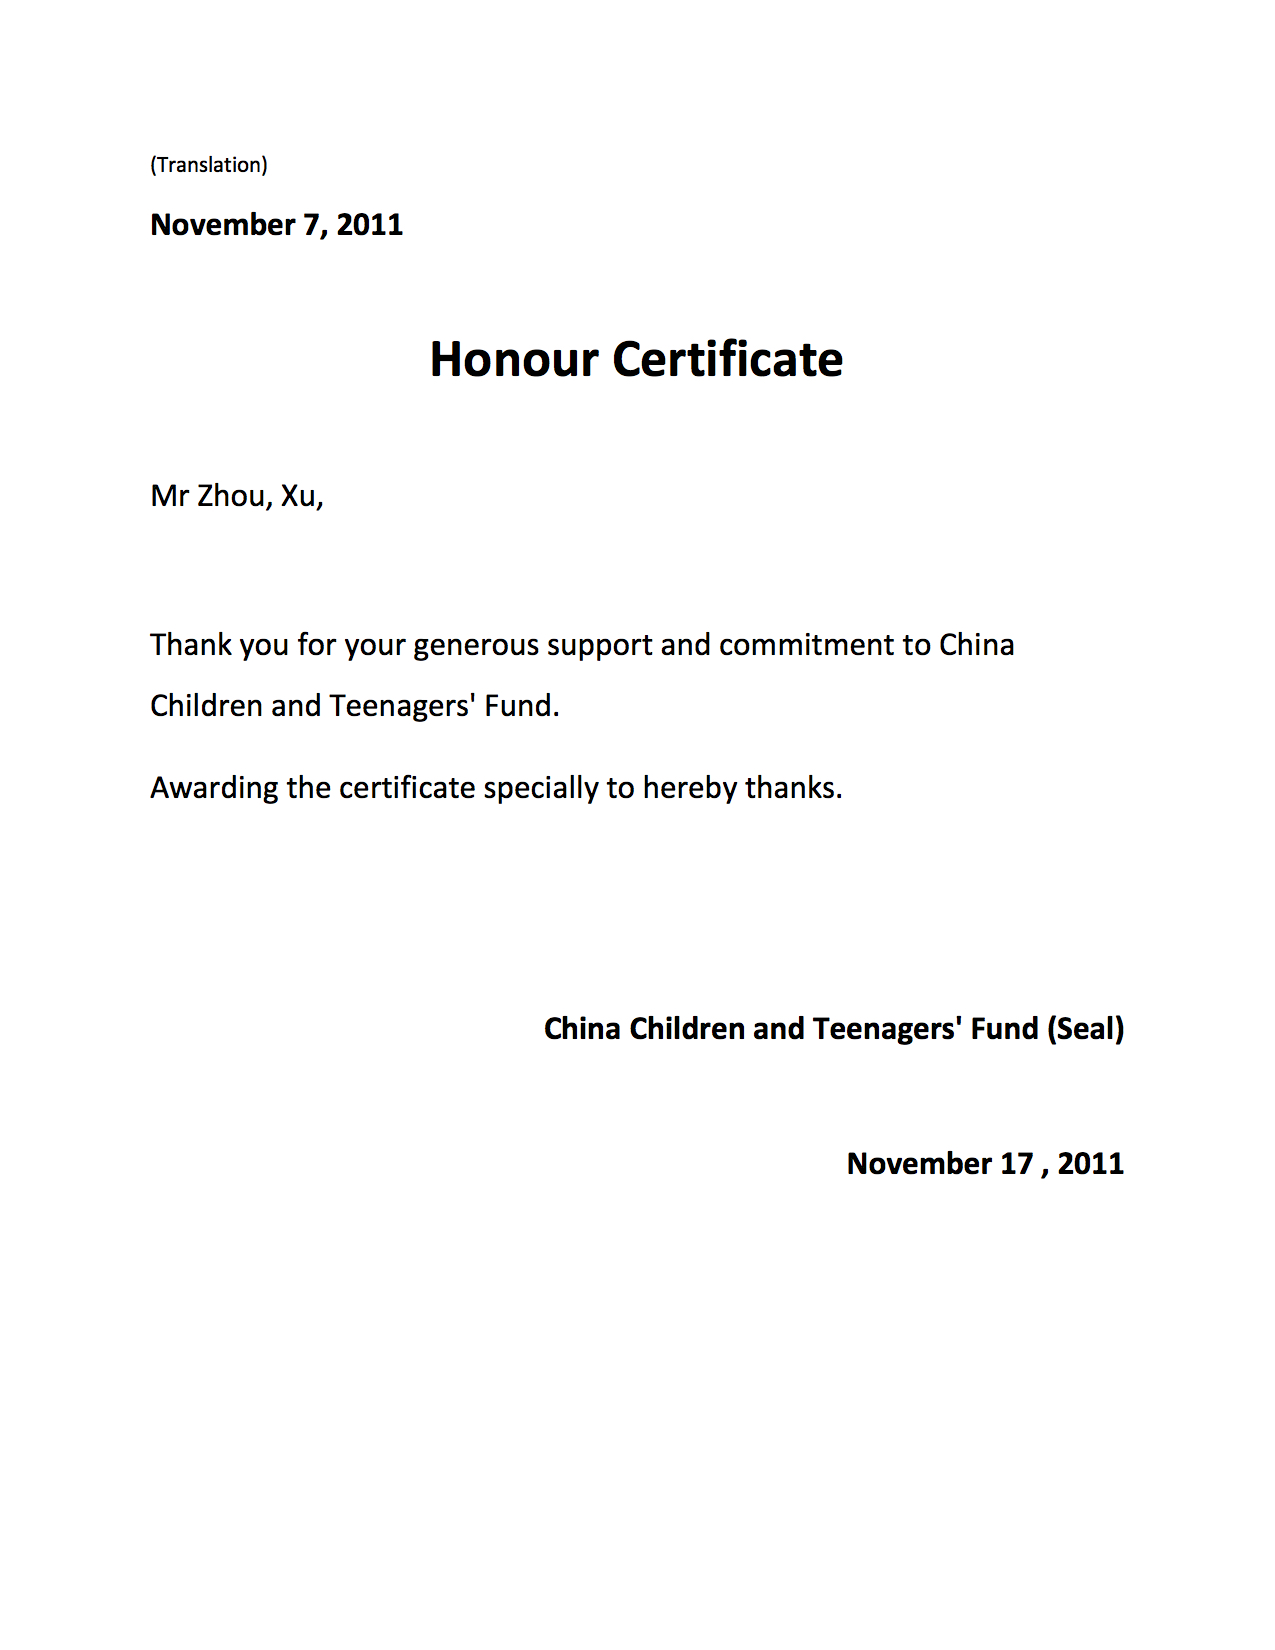 Honour Certificate from China Childr